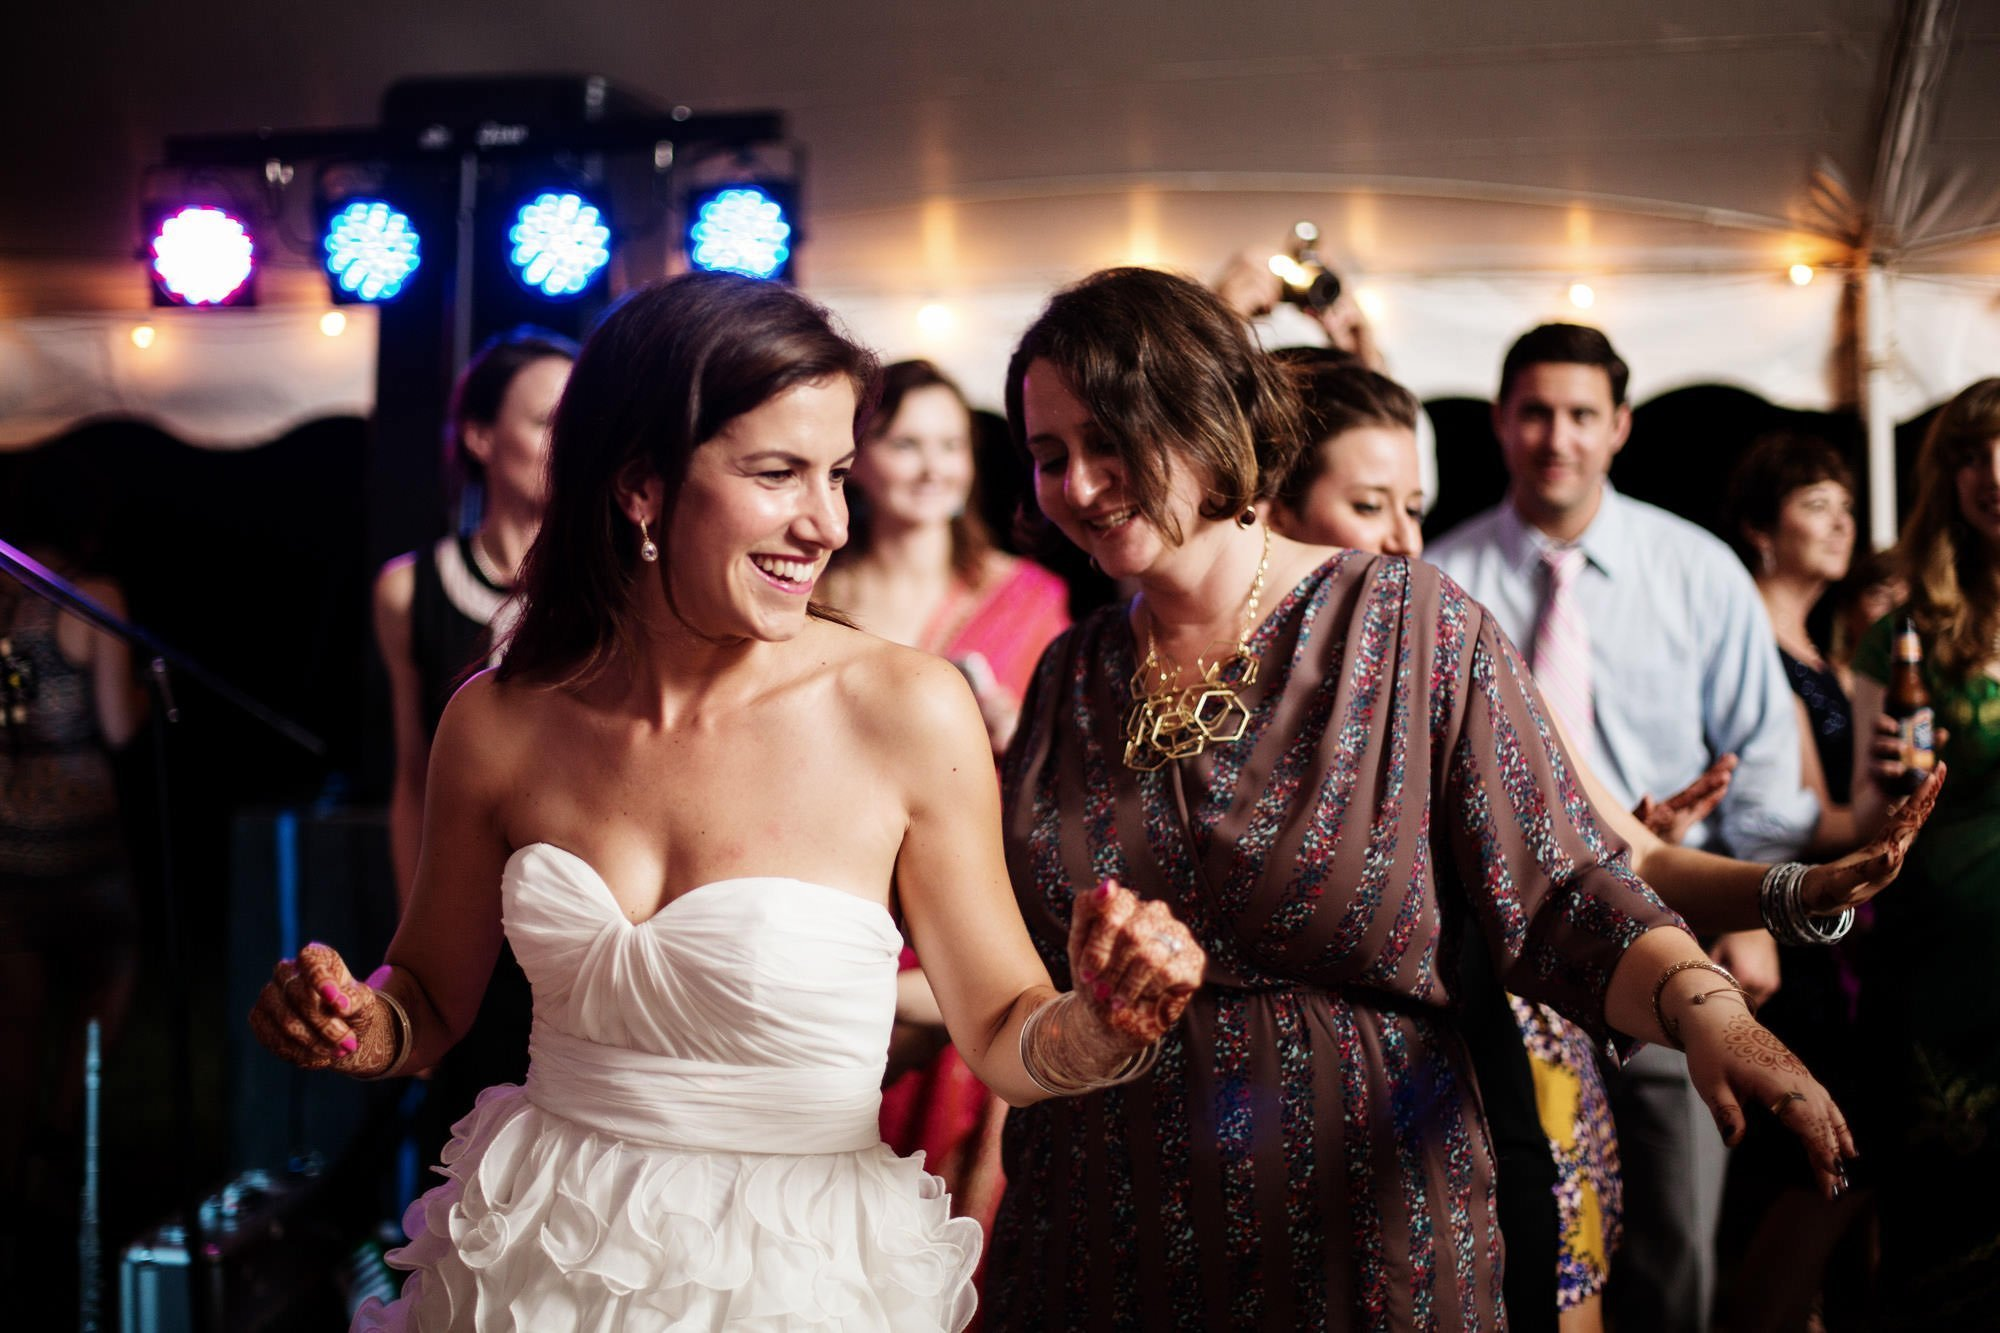 The bride dances with her guests during the wedding reception at Doukenie Winery.